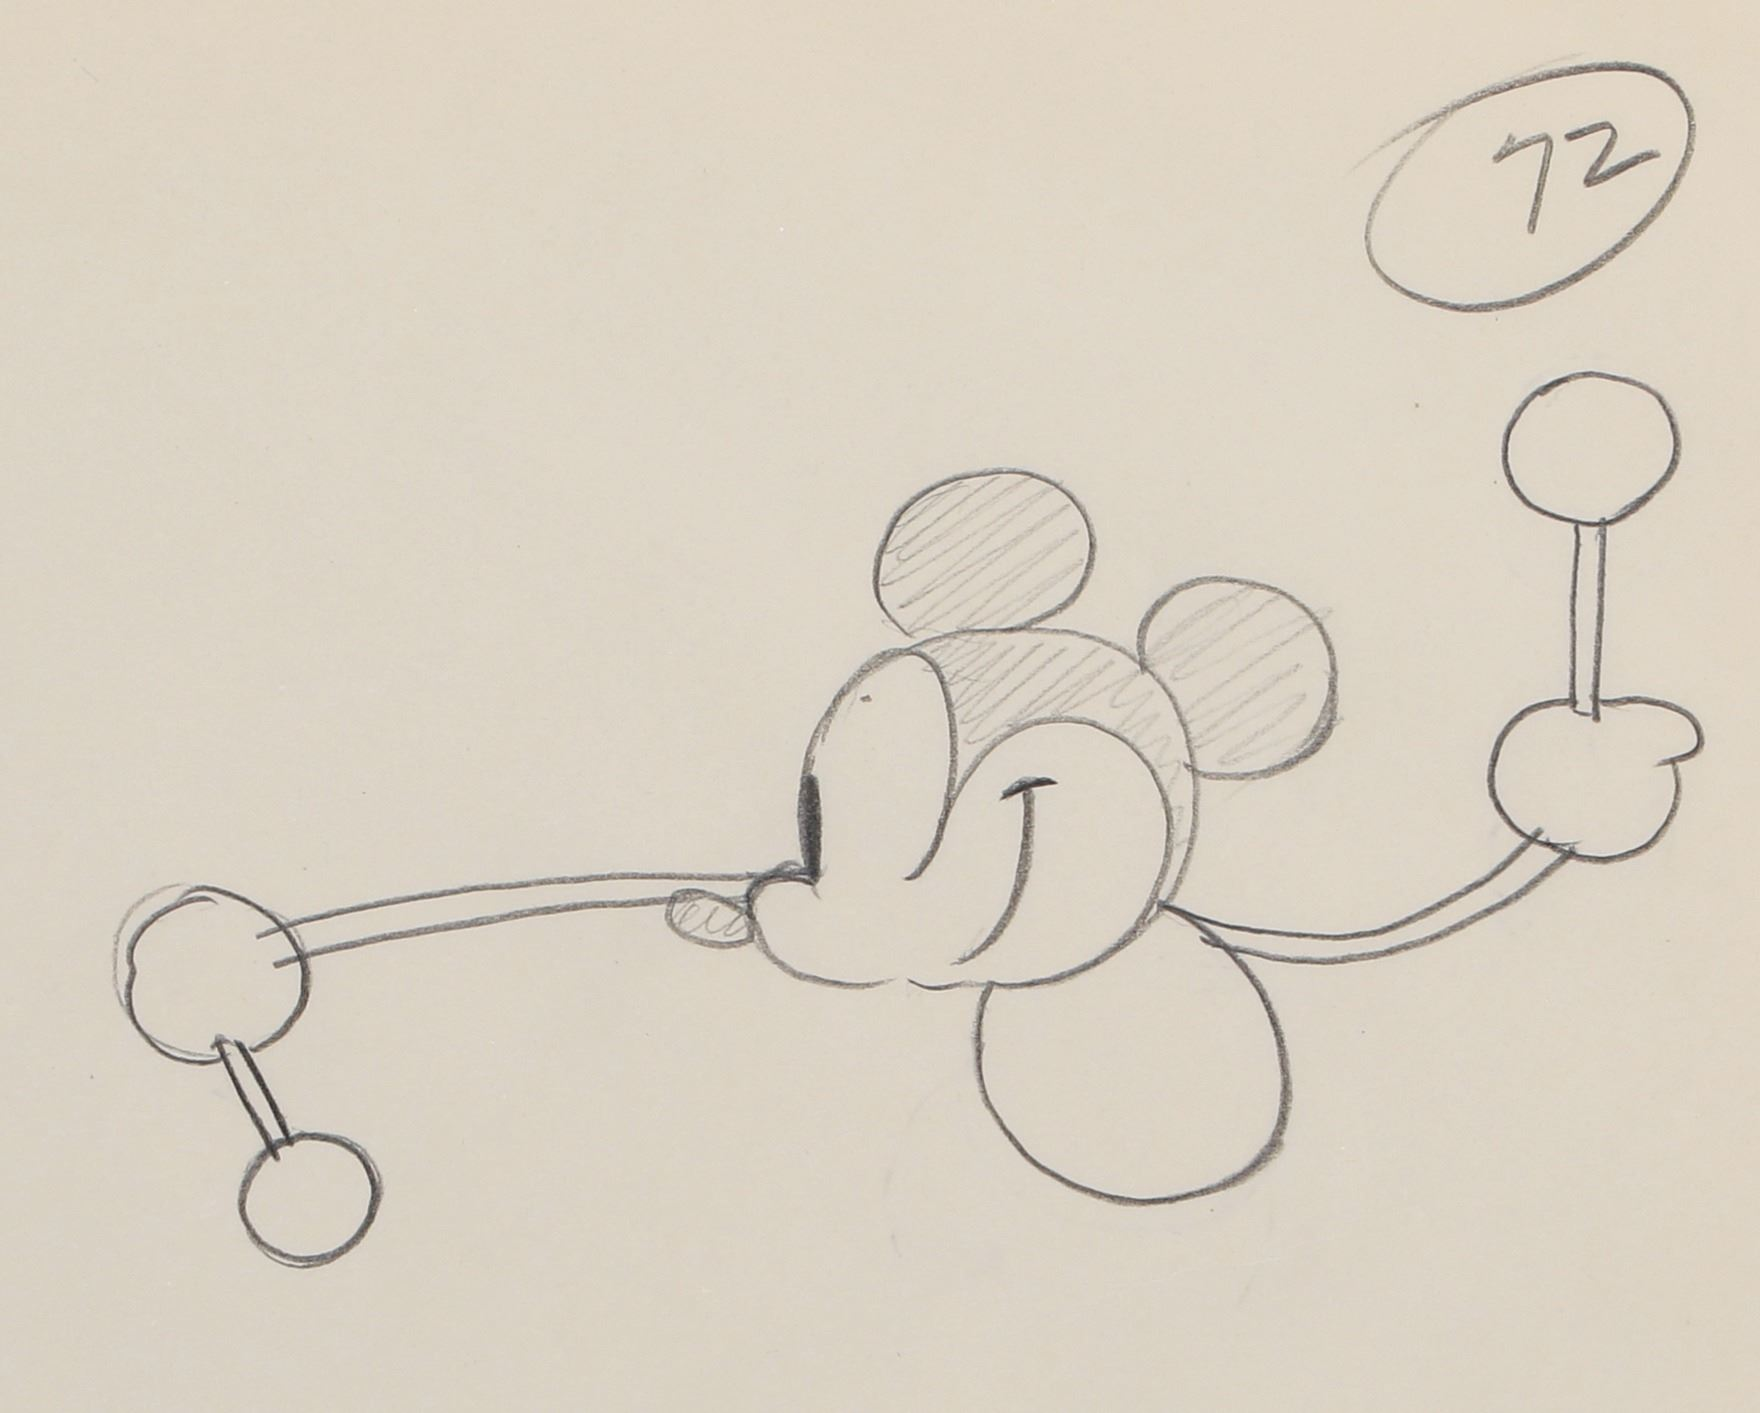 Image 1 mickey mouse production drawing from steam boat willie